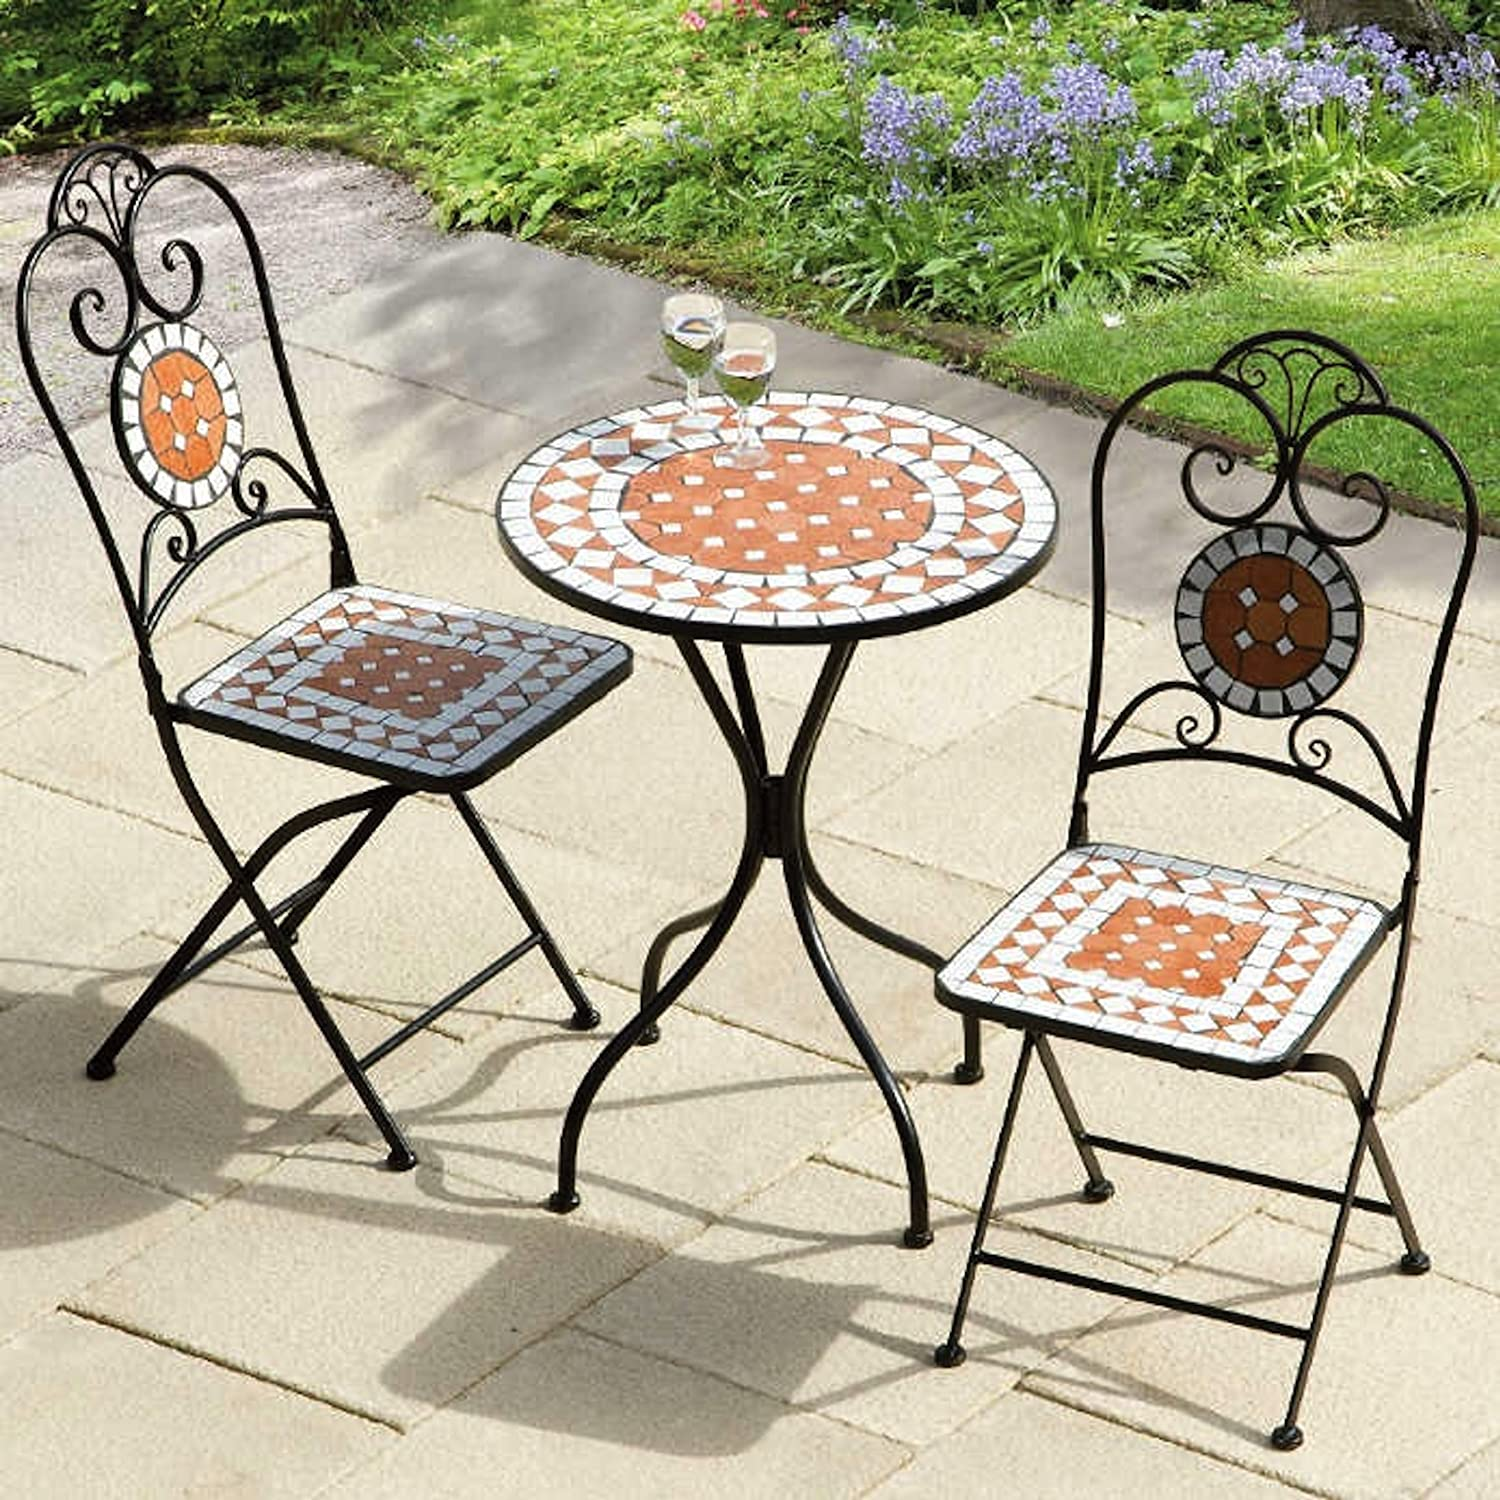 bistro tiles table 2 folding chairs set patio terrace furniture ebay